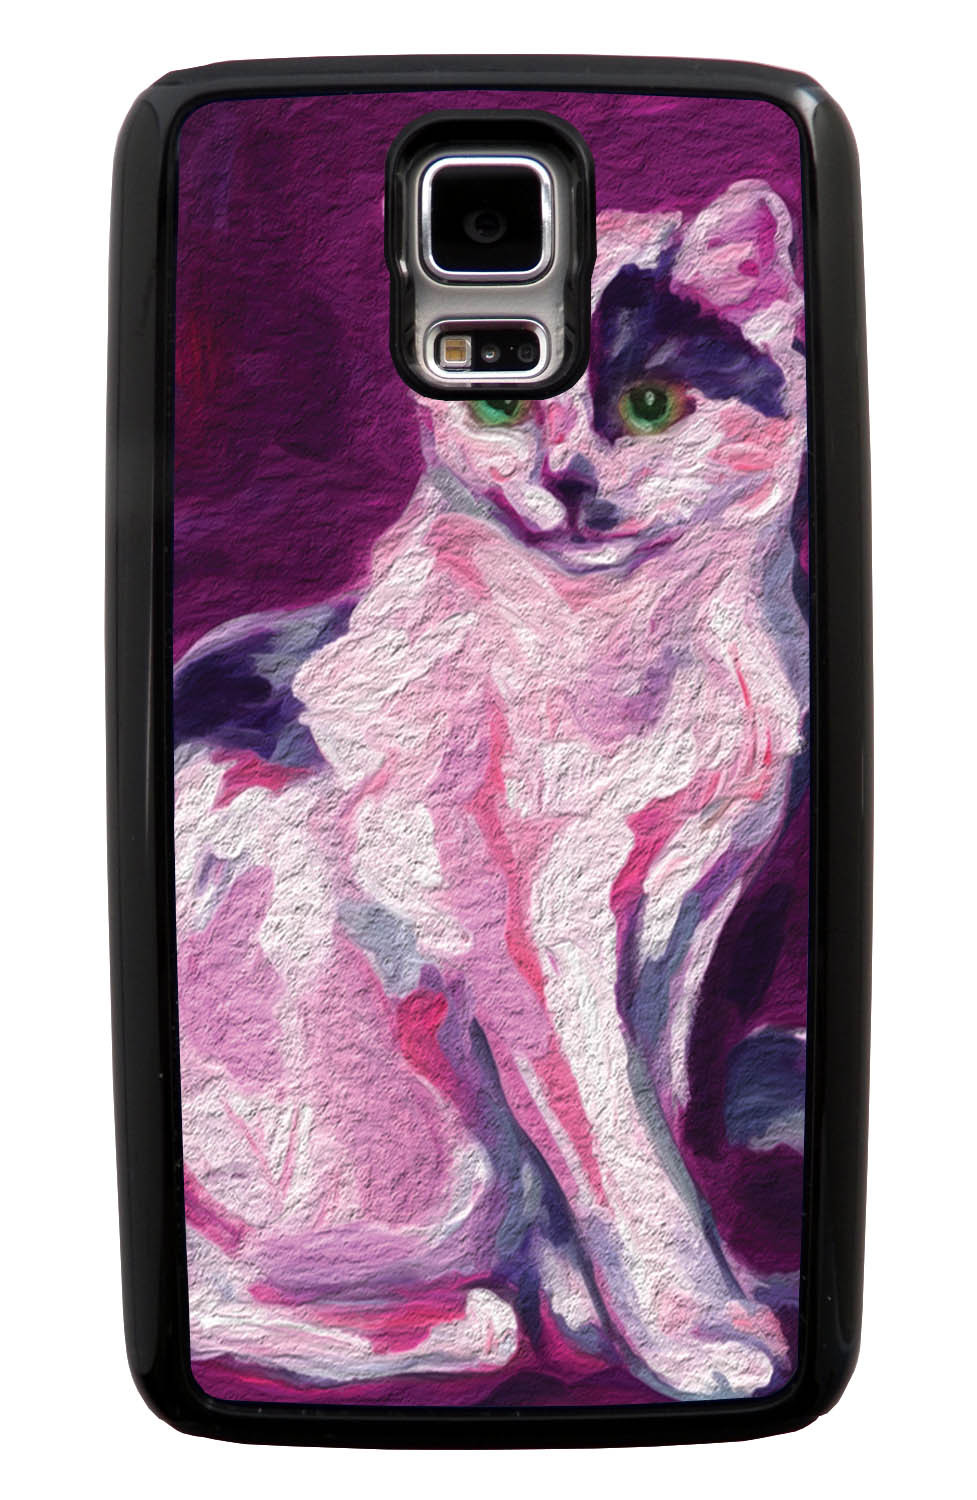 Samsung Galaxy S5 / SV Cat Case - Painted Cat Picture